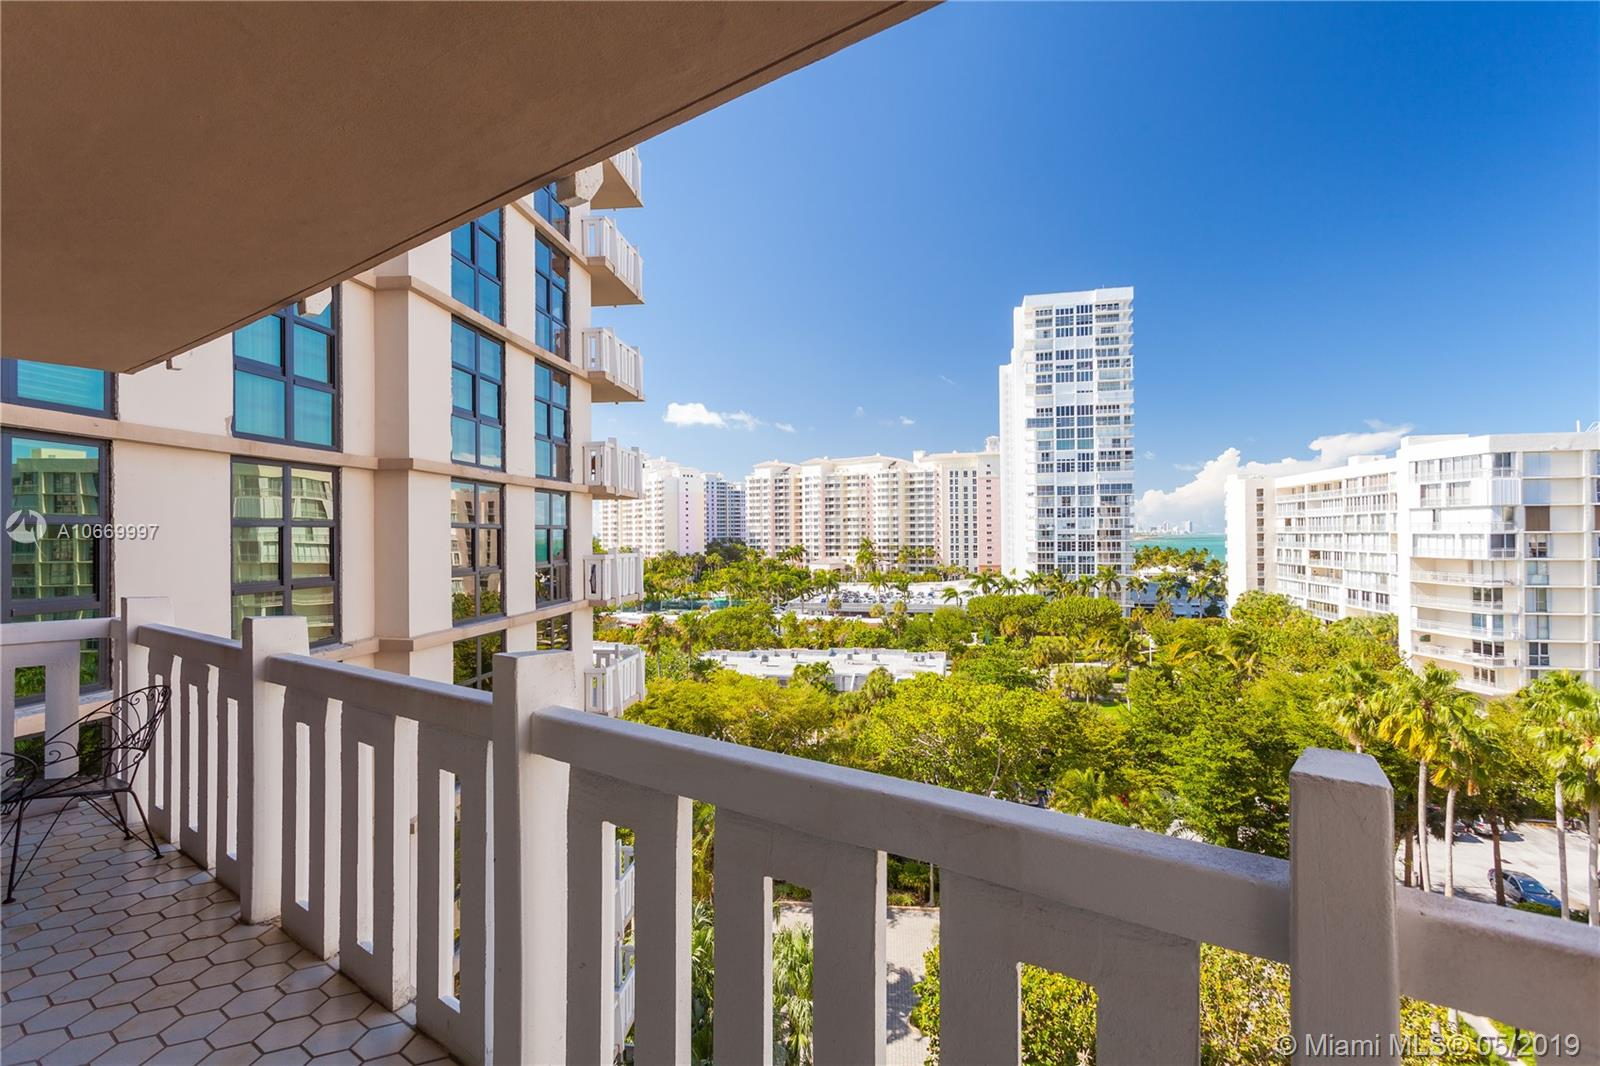 1121  Crandon Blvd #E703 For Sale A10669997, FL